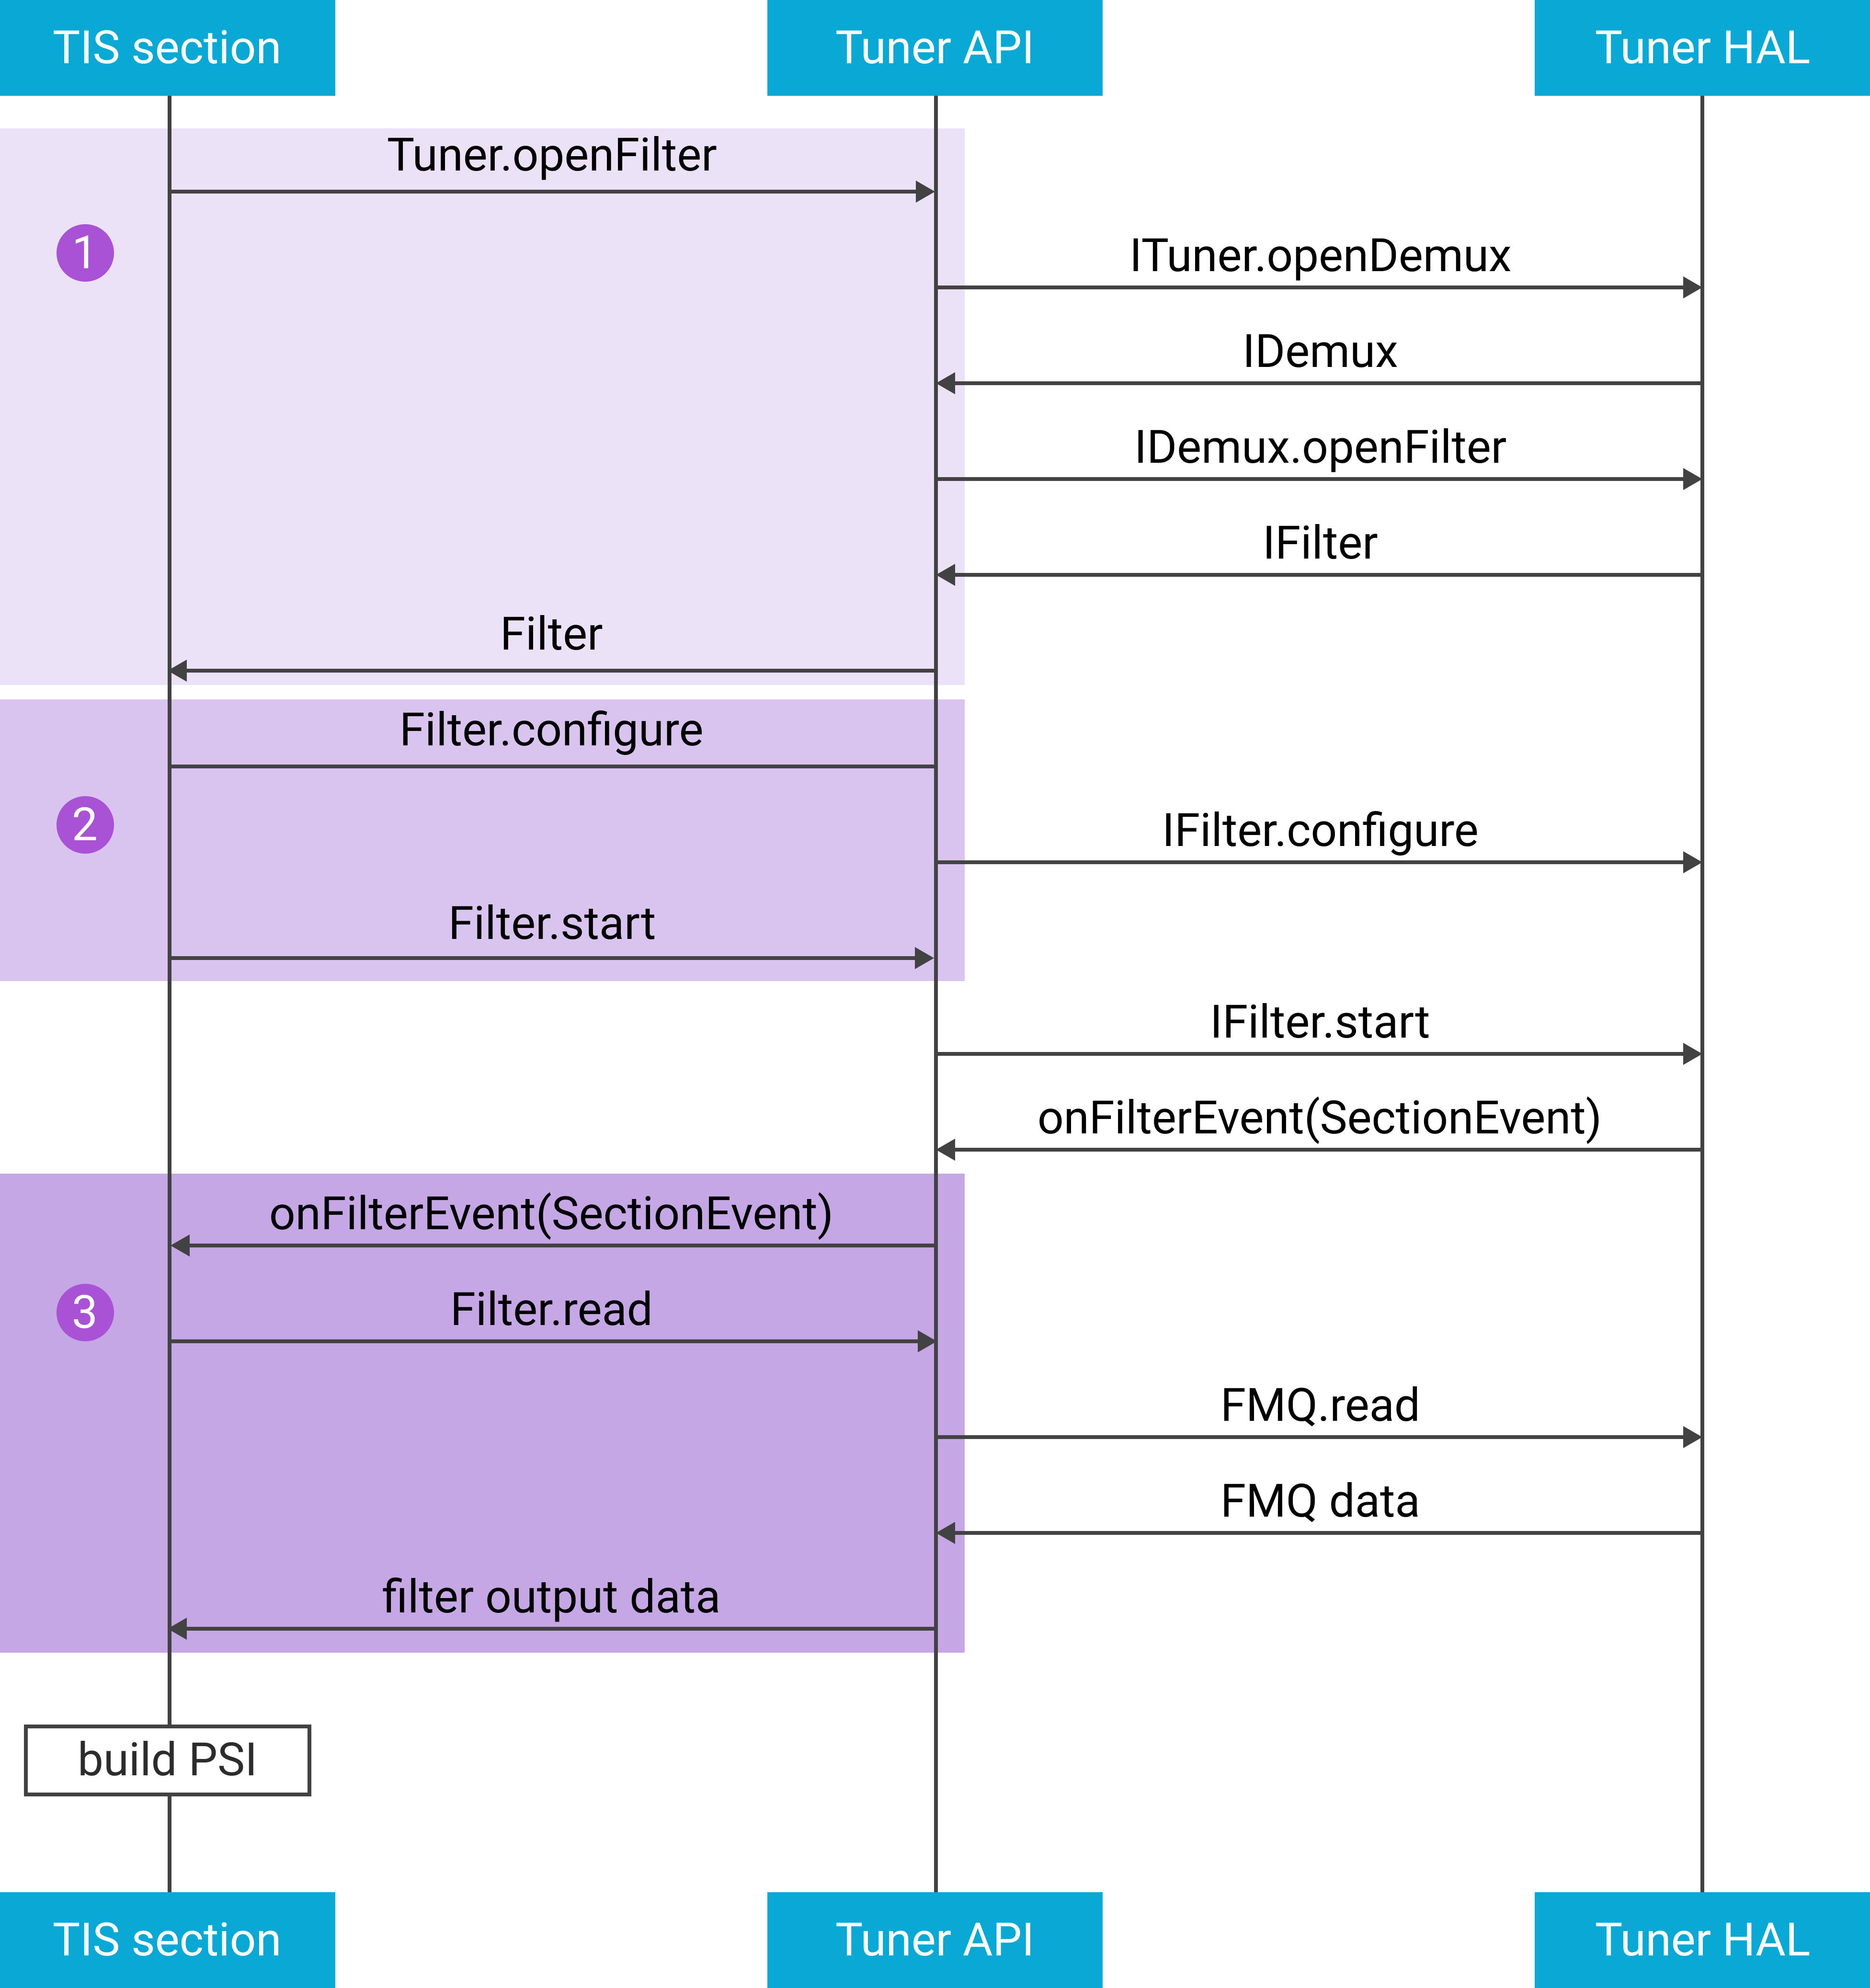 Example flow for using filter to build PSI/SI.